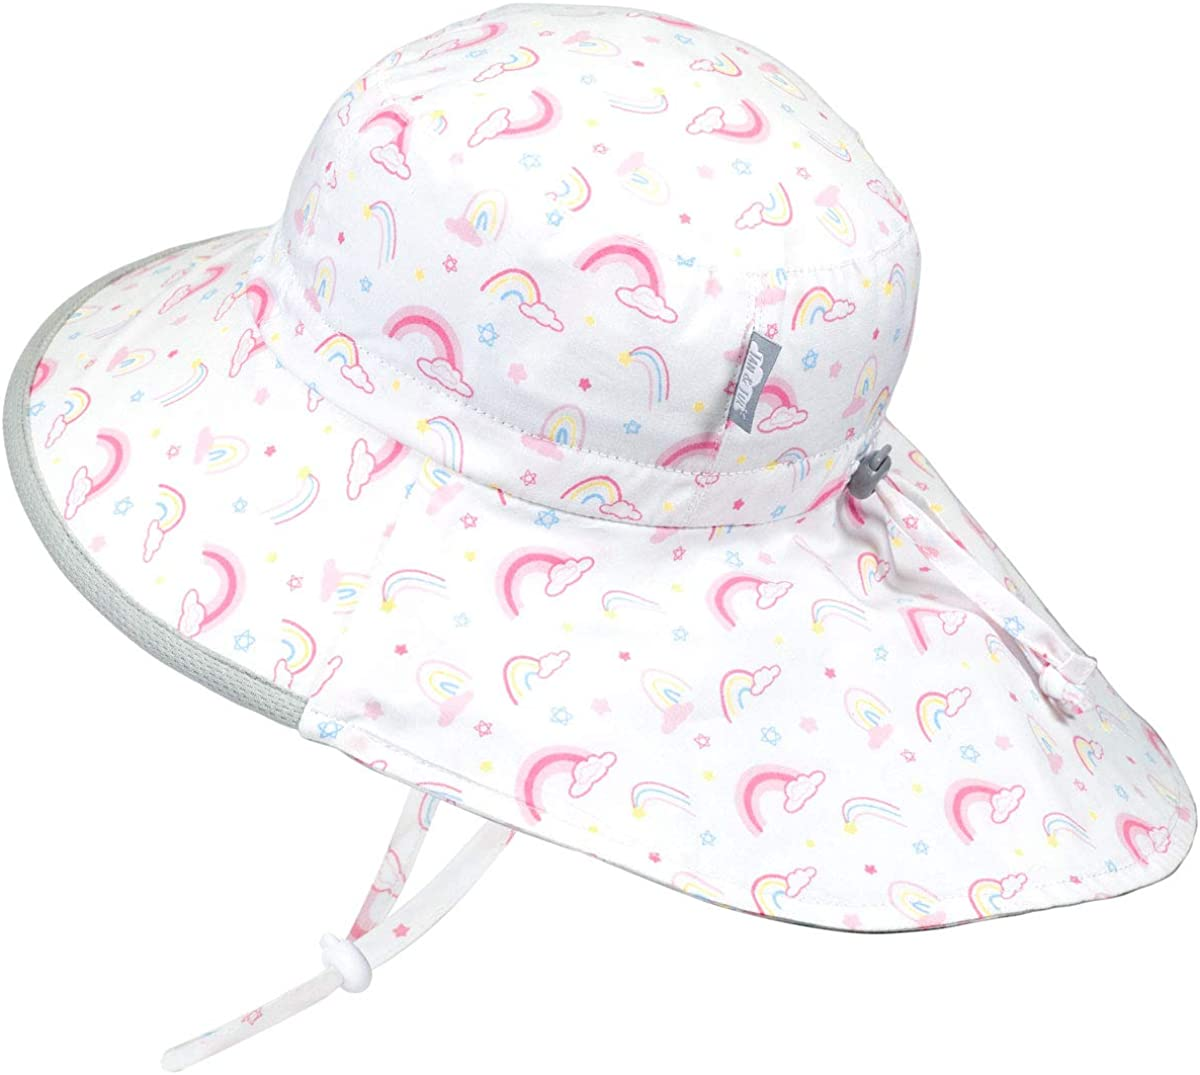 50 UPF Adjustable Toddler Sun Hat for Baby and Kids Jan /& Jul GRO-with-Me Cotton Adventure Hat